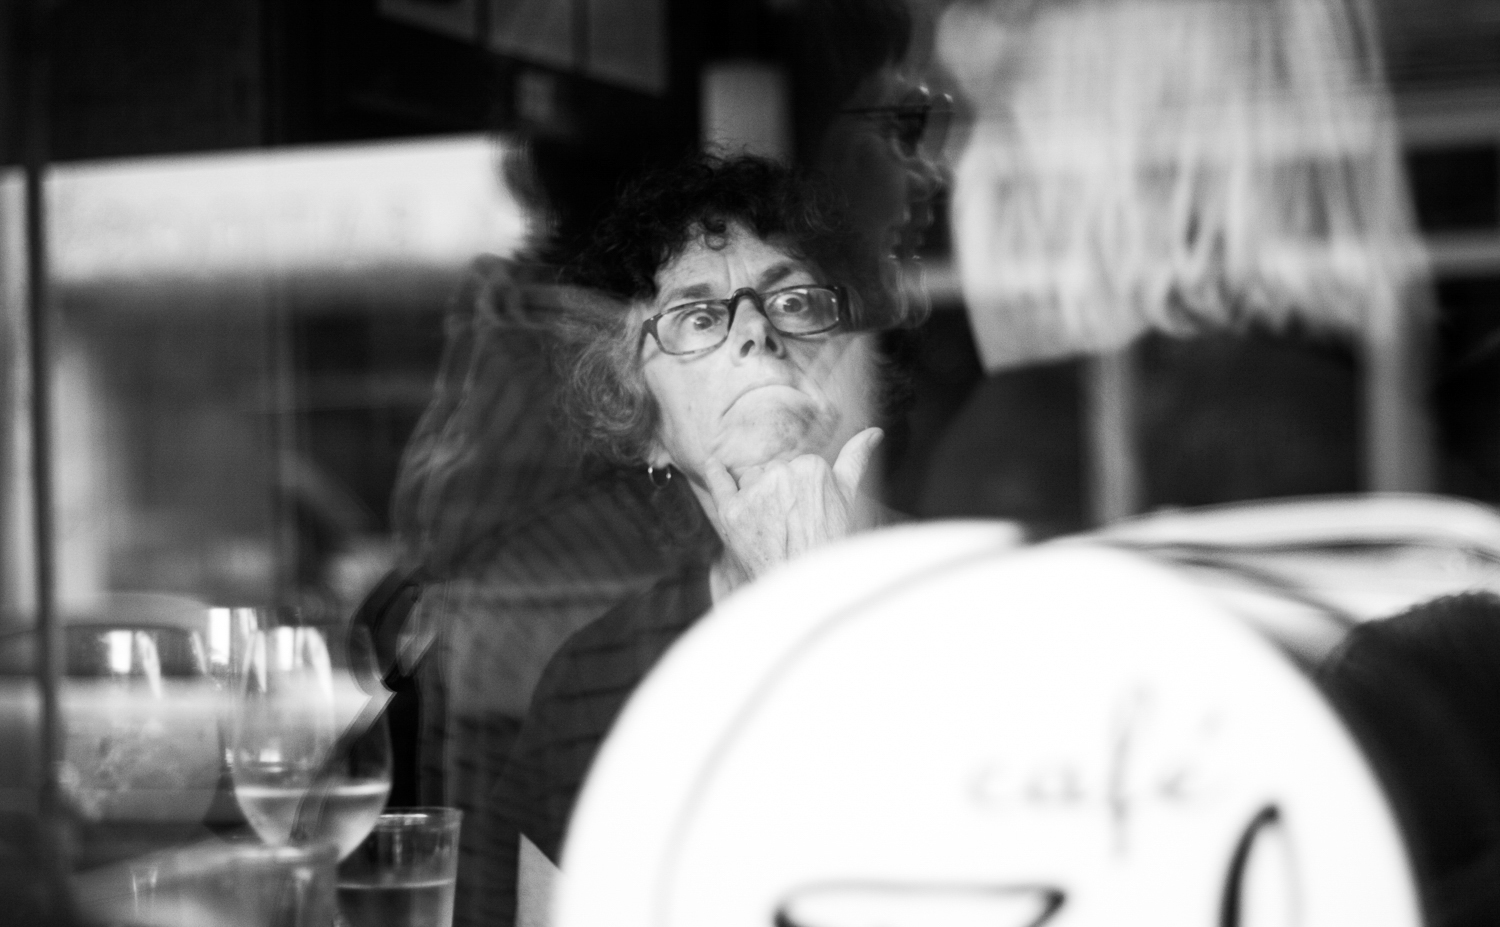 expressions captured by a street photography camera